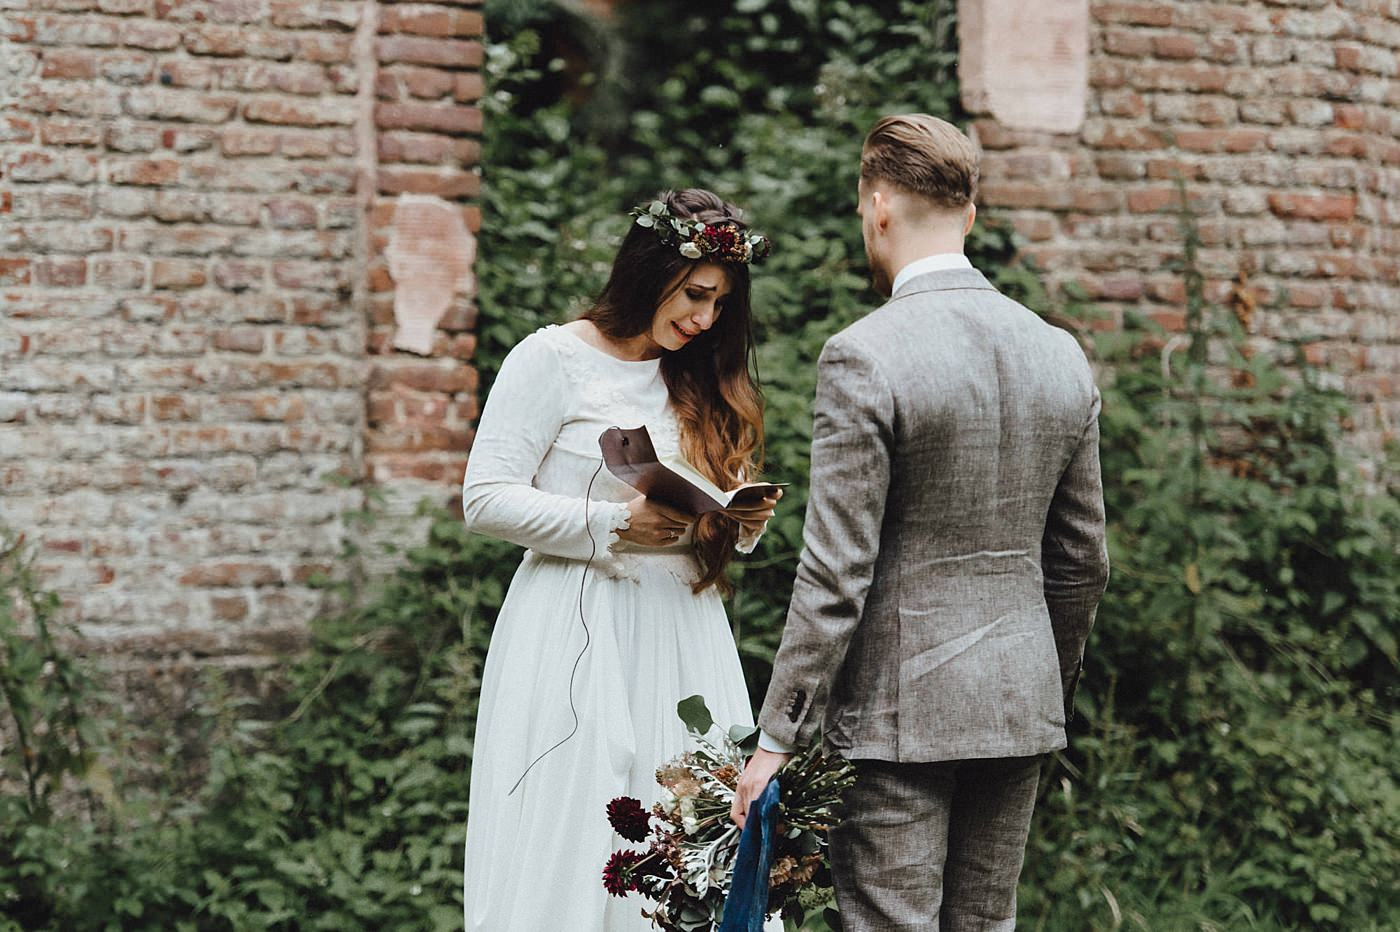 urban-elopement-wedding-114